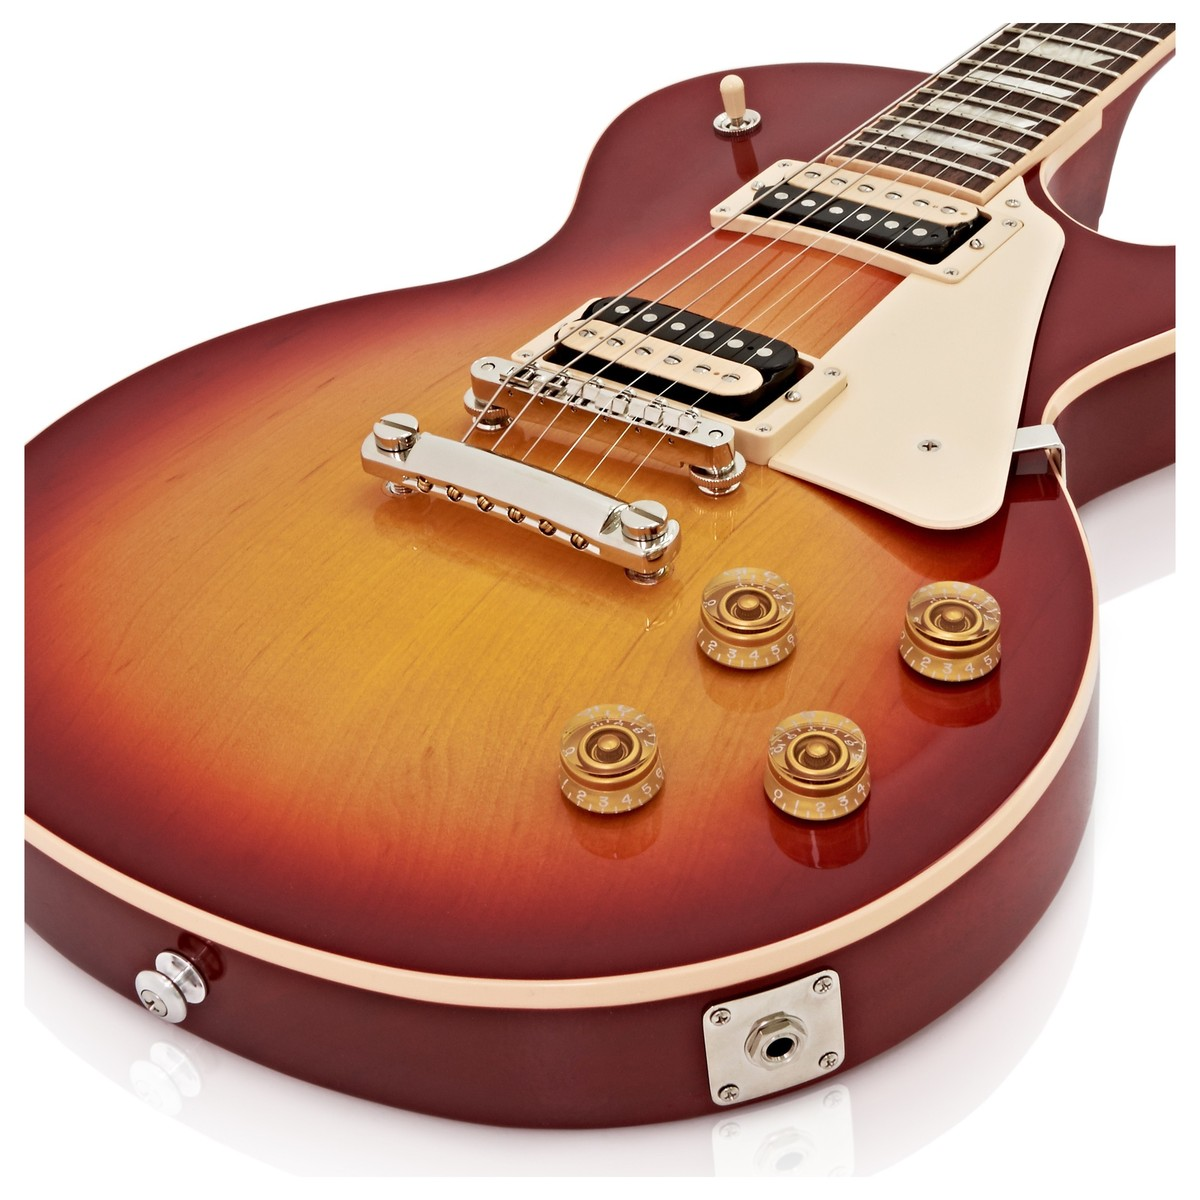 gibson les paul classic t electric guitar cherry sunburst 2017 at. Black Bedroom Furniture Sets. Home Design Ideas